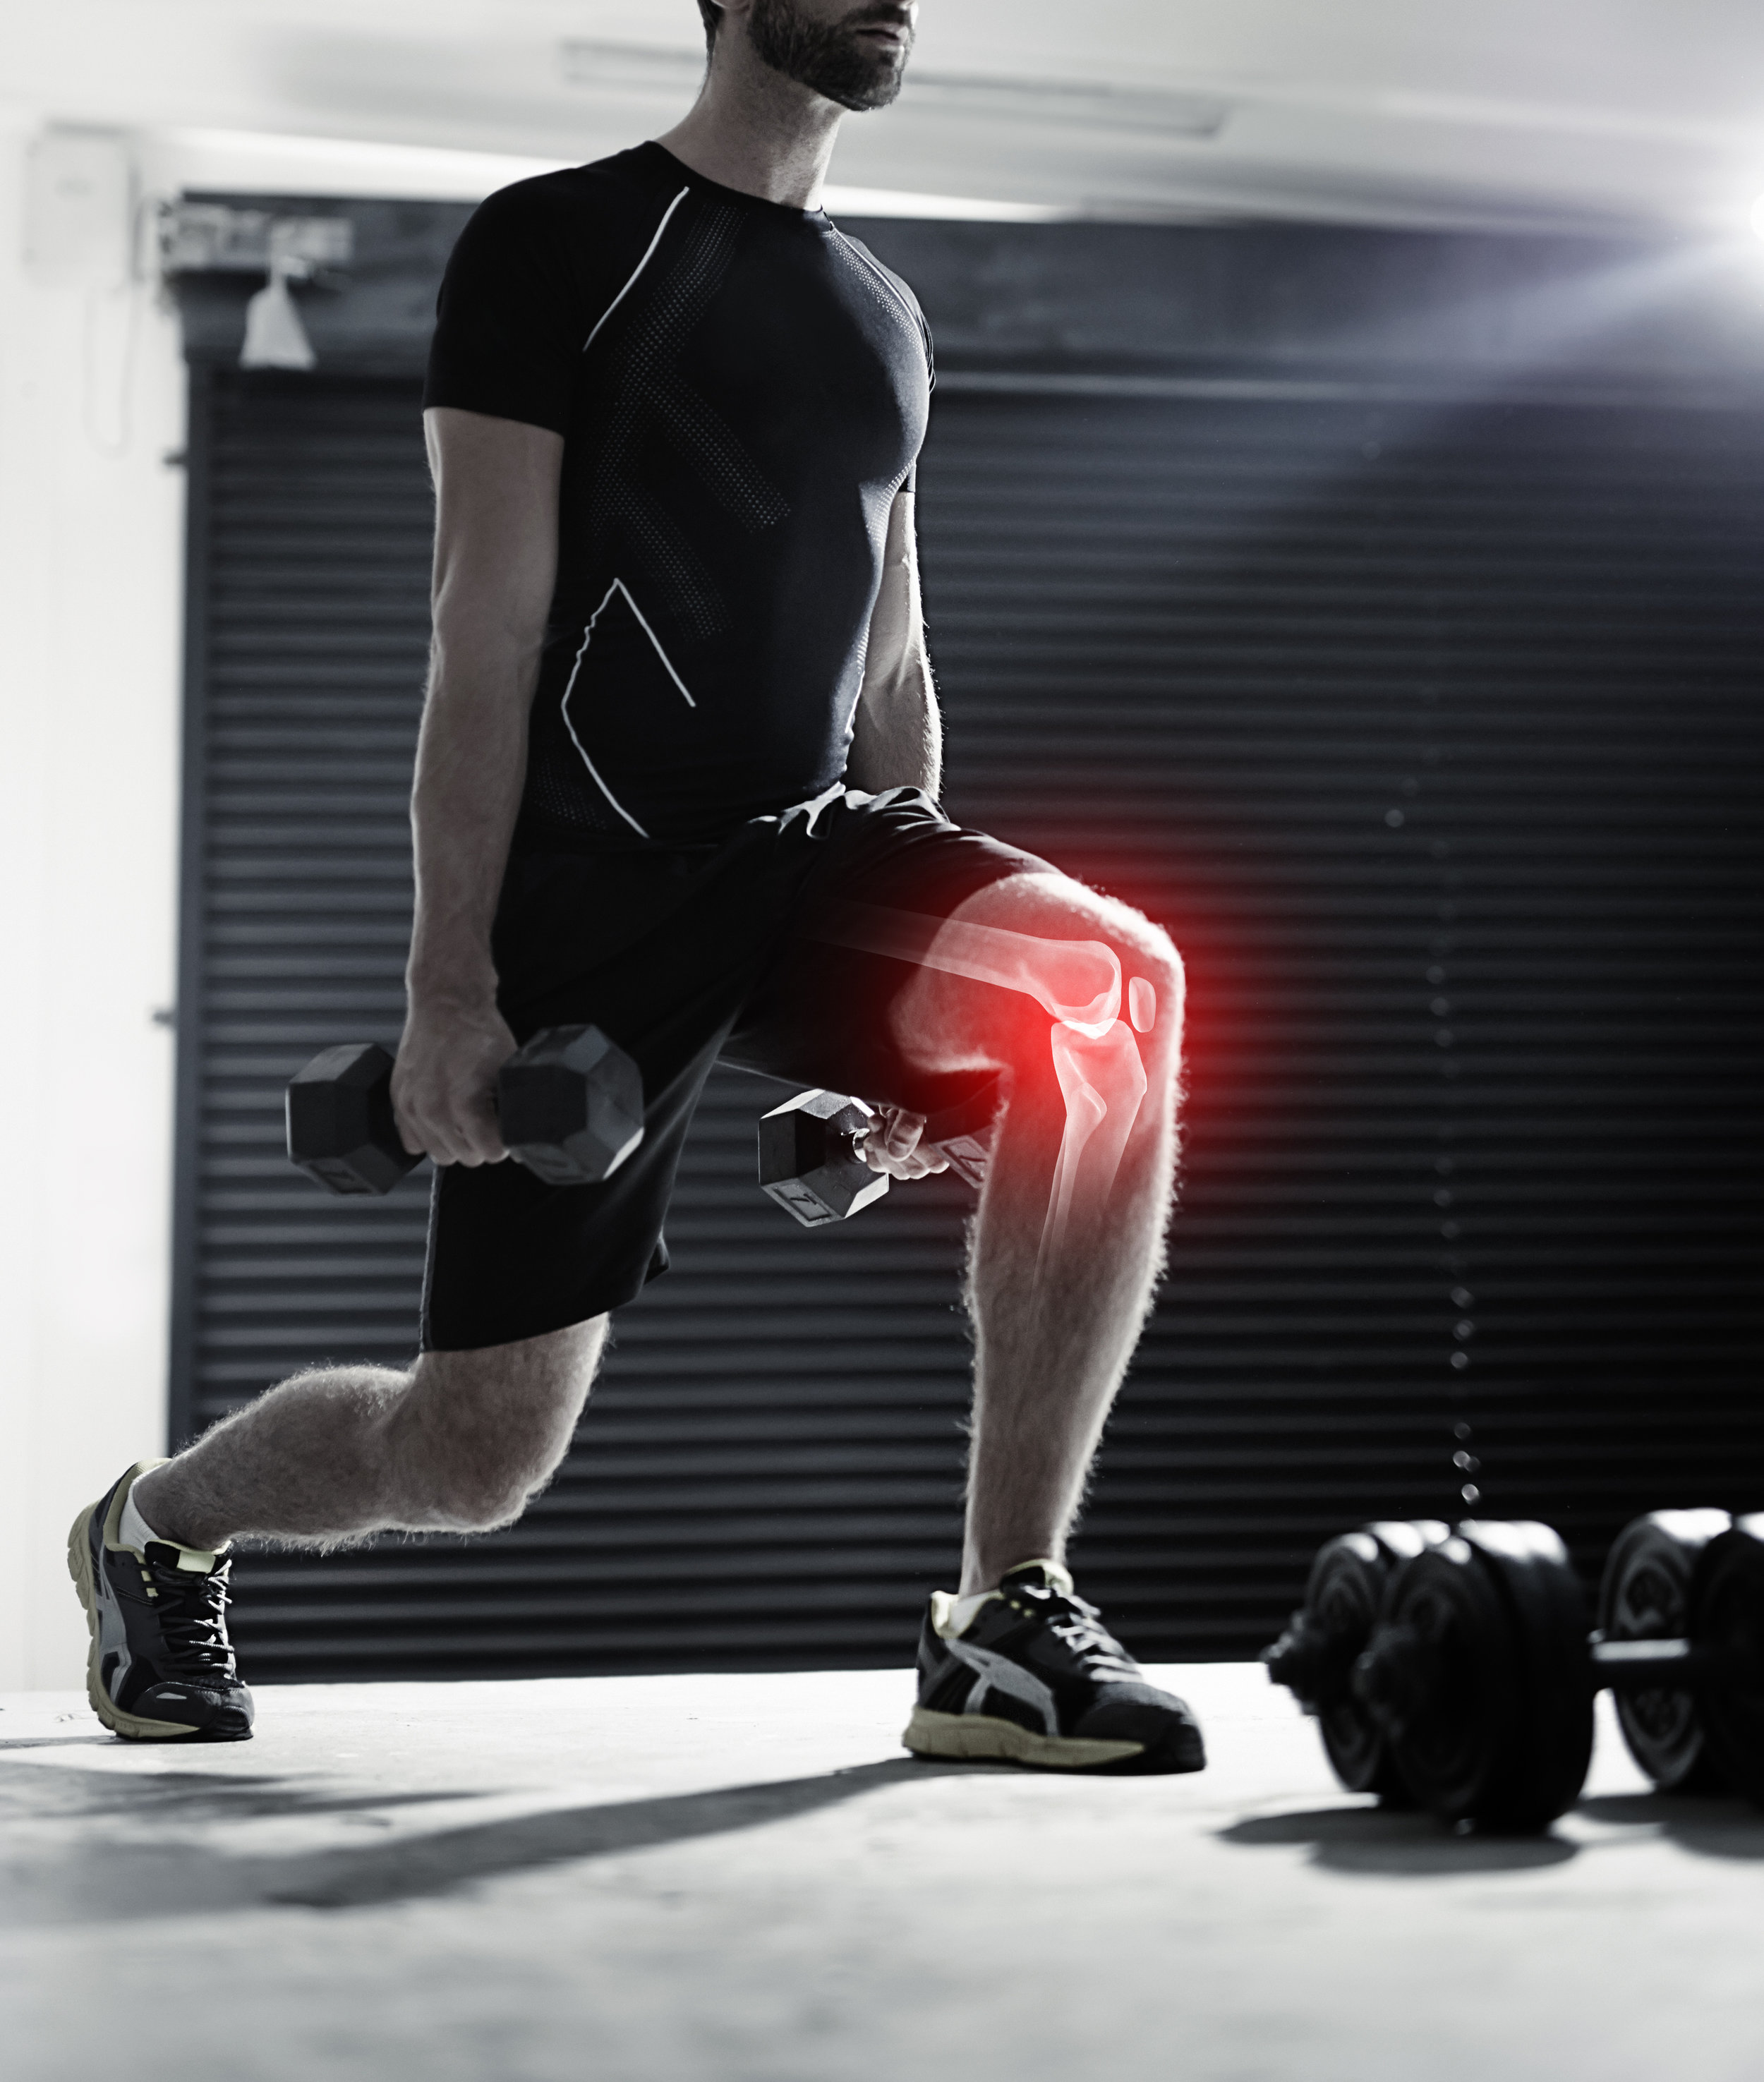 Chiropractic patient with sports injury and knee pain